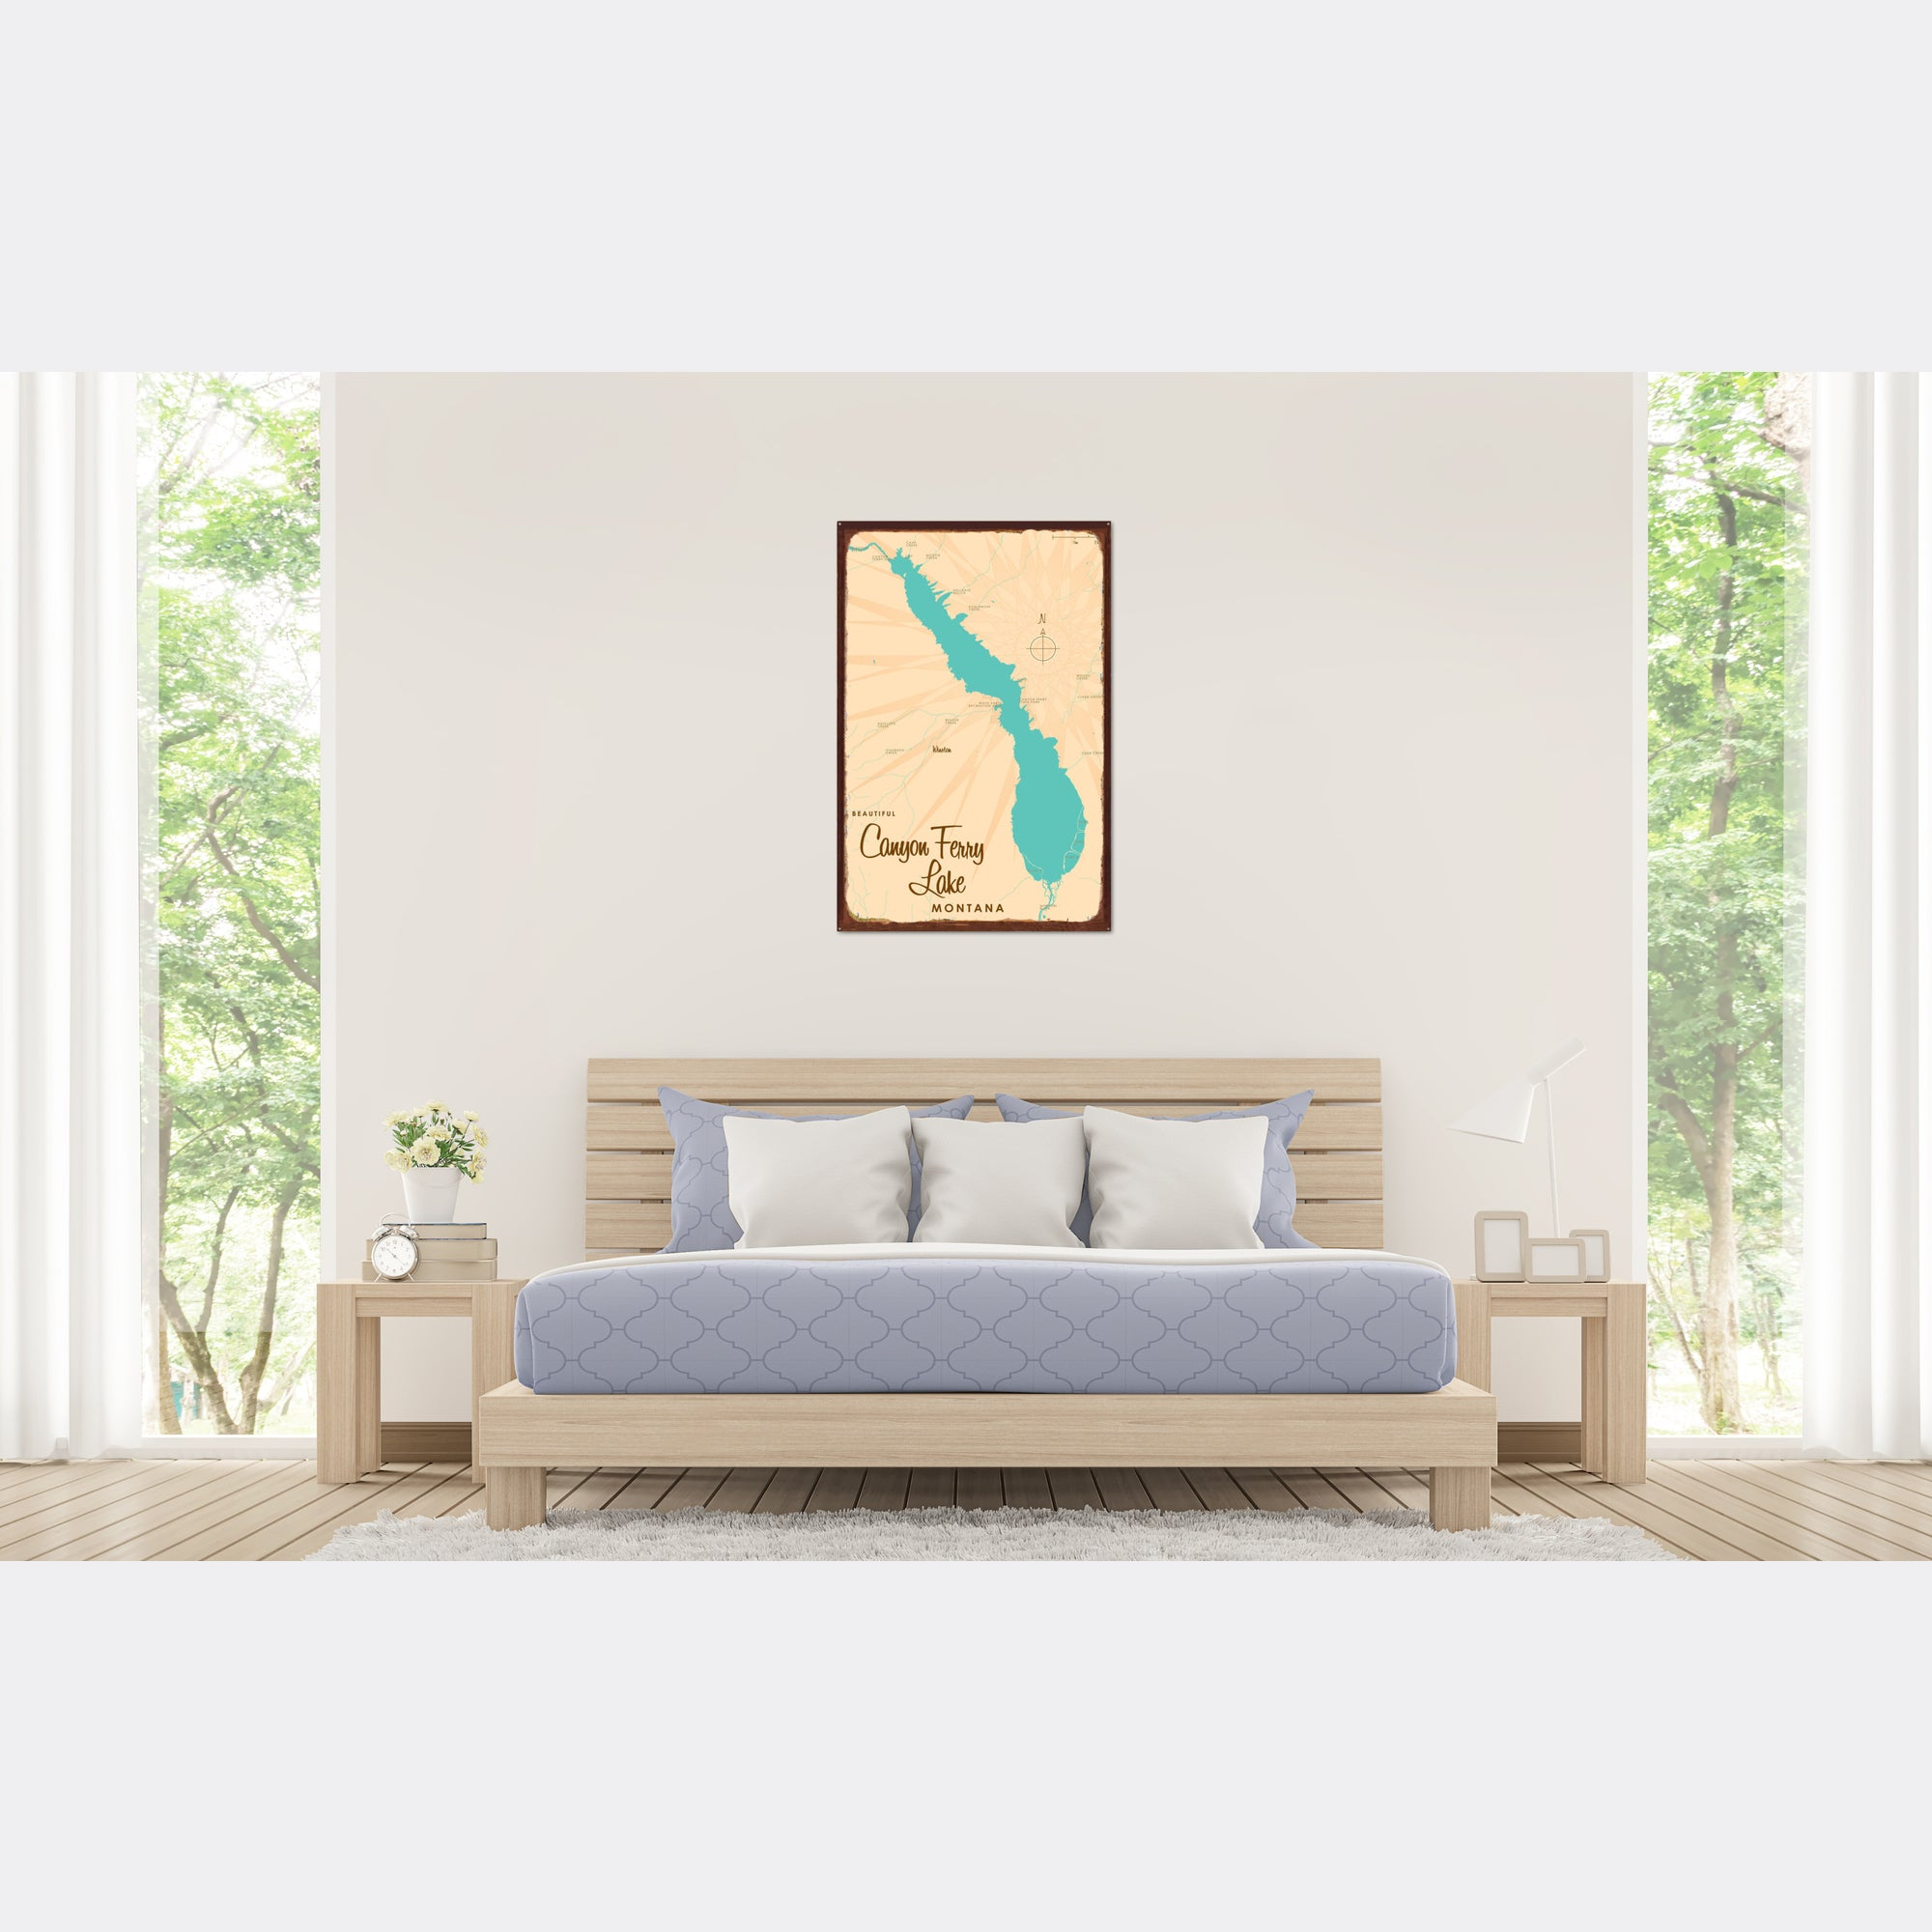 Canyon Ferry Lake Montana, Rustic Metal Sign Map Art